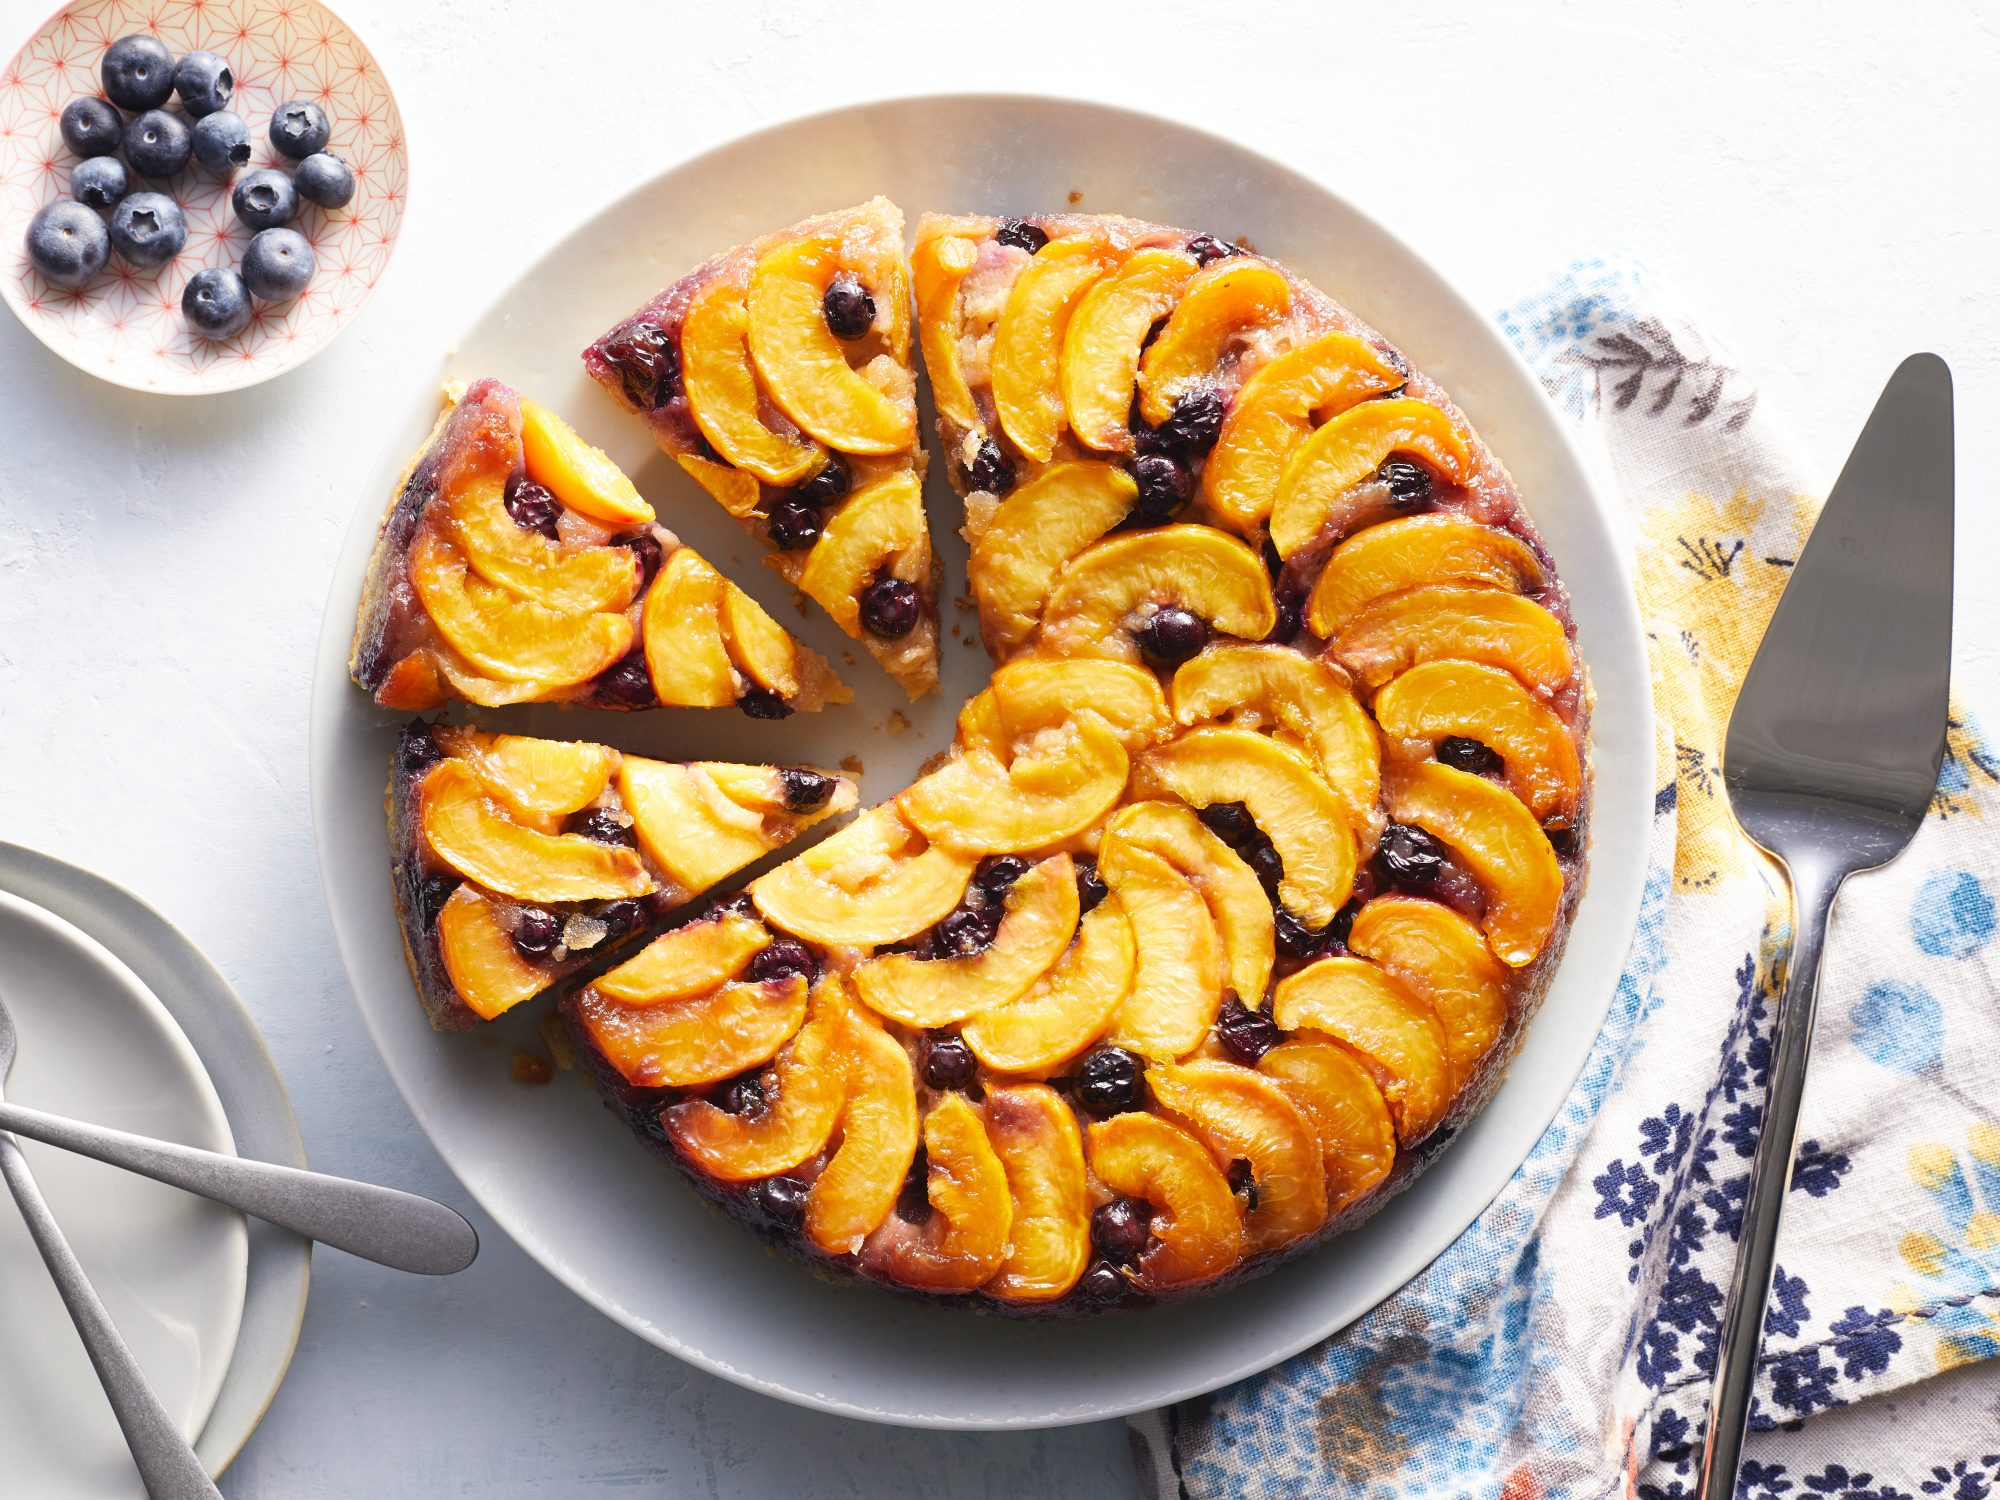 Blueberry-Peach Upside Down Cake image